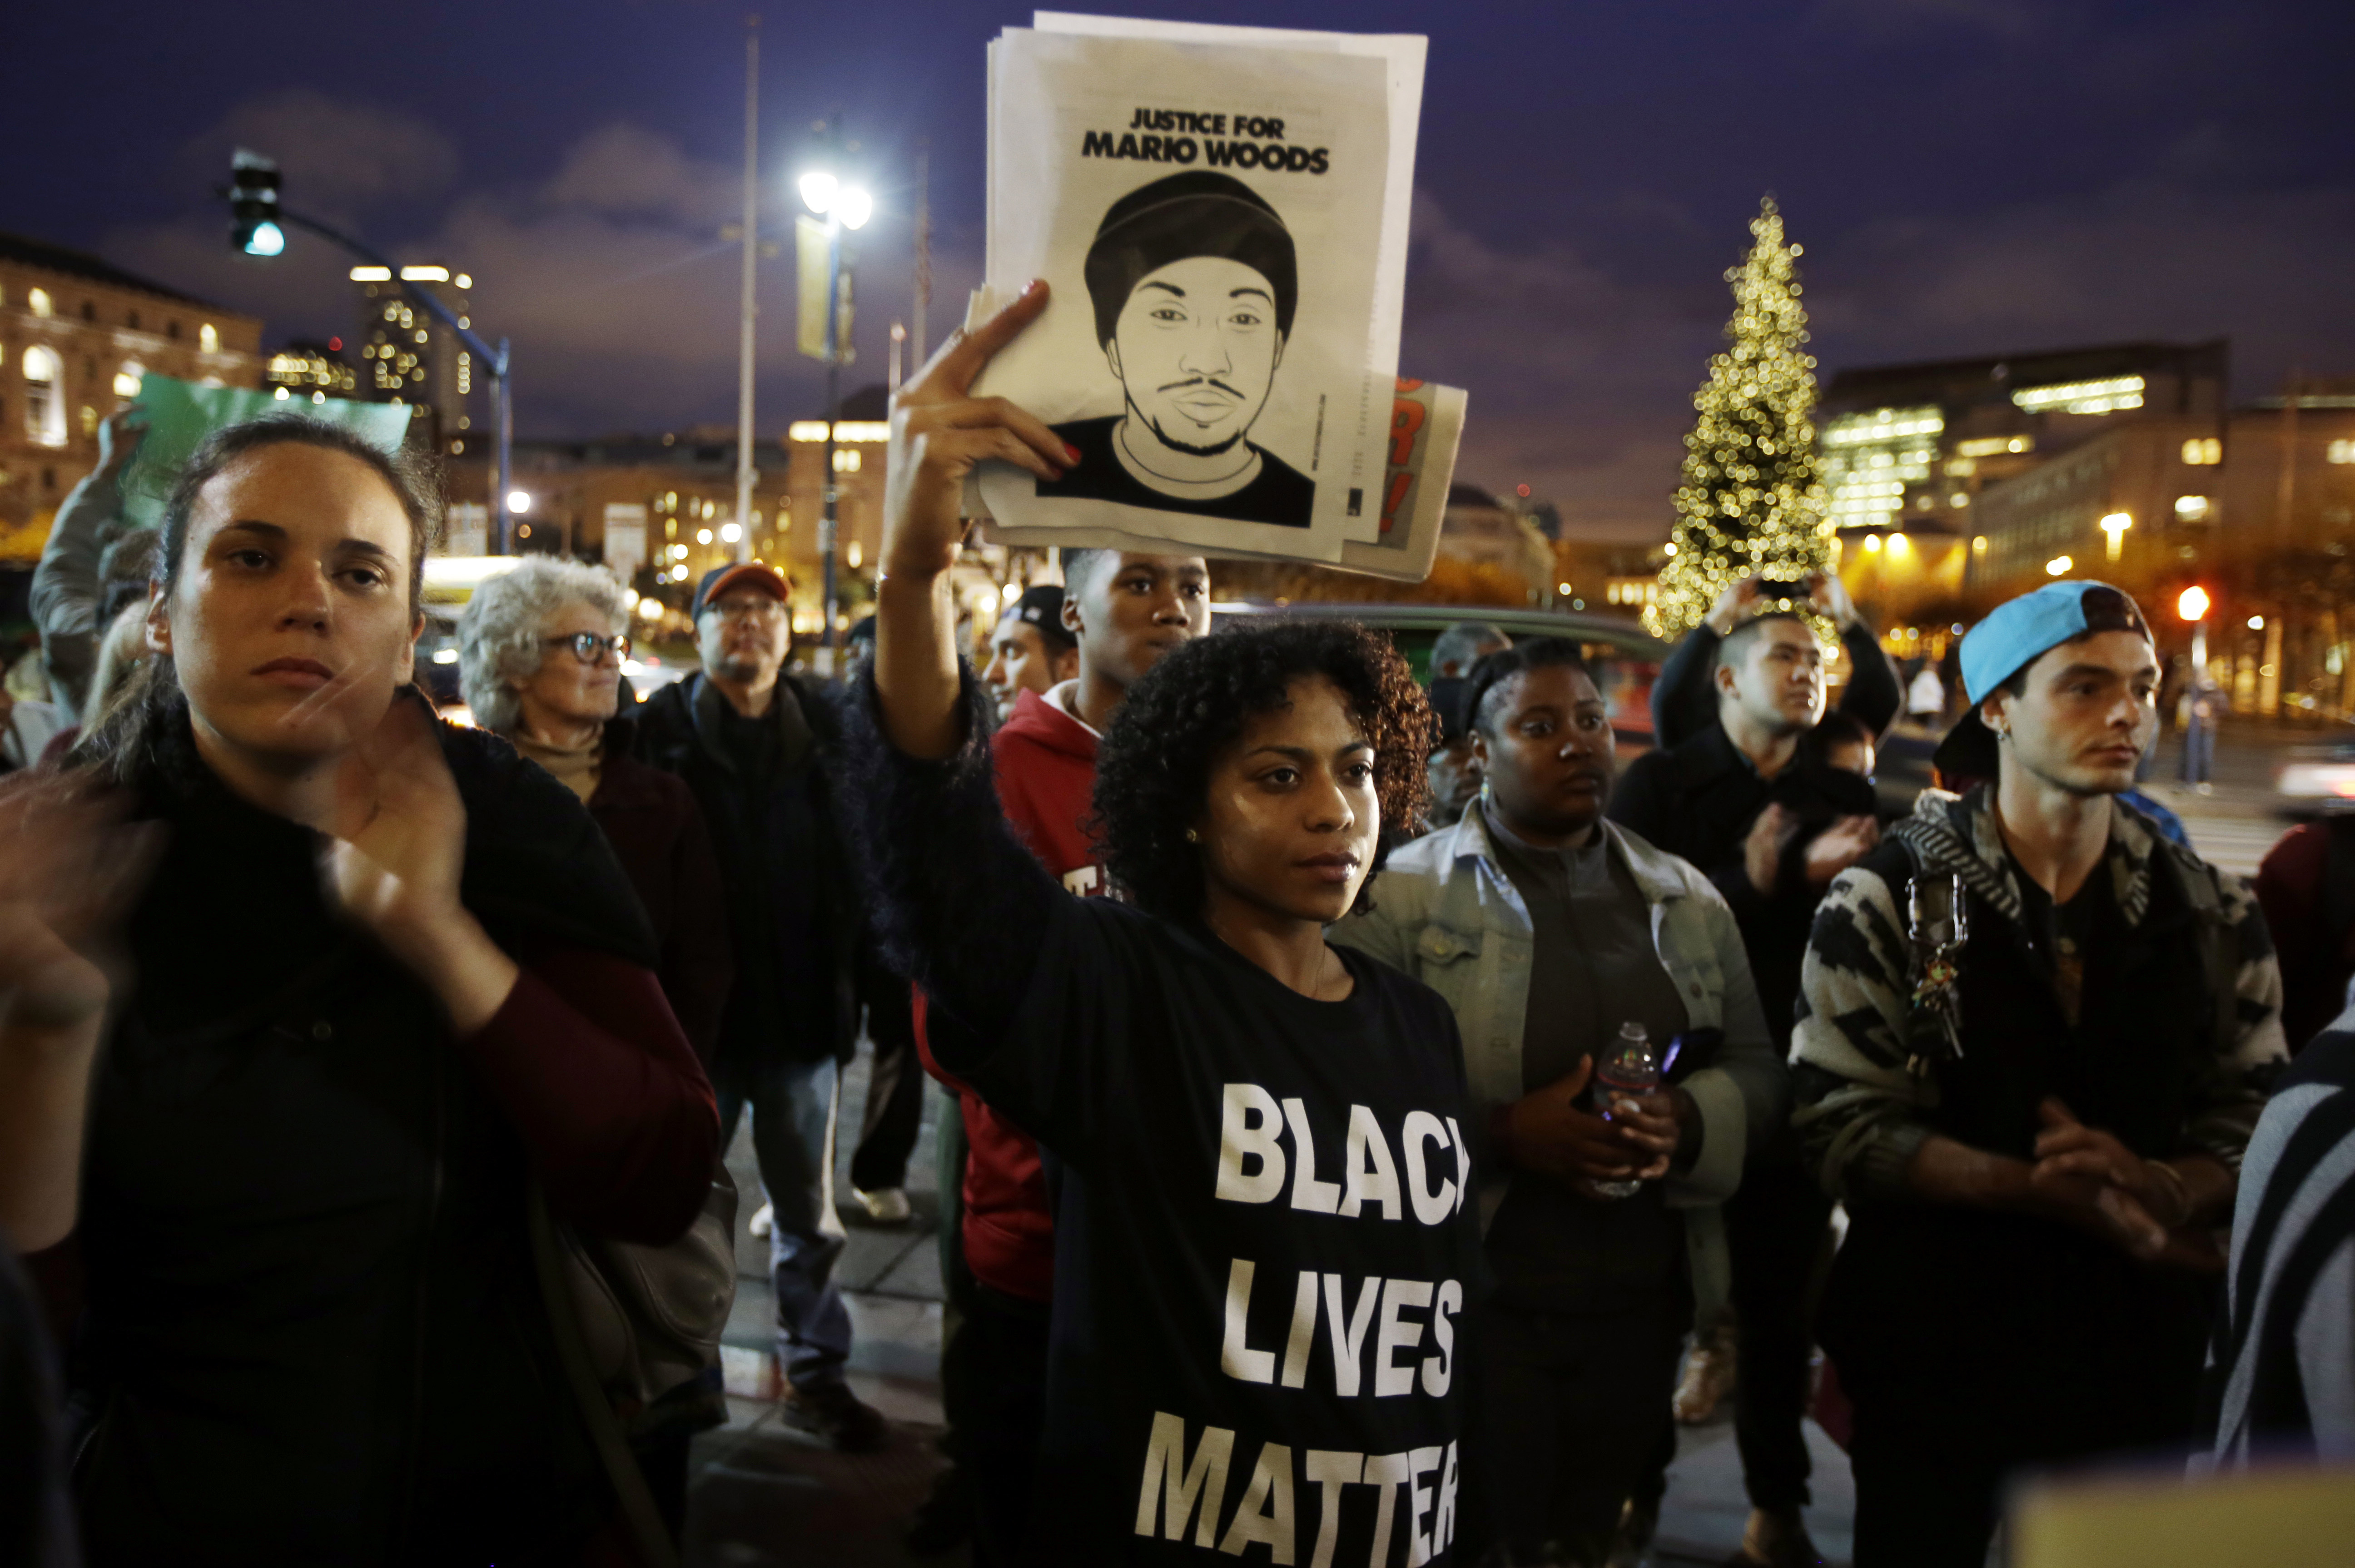 LaJoy Crenshaw, center, holds a picture of Mario Woods during a demonstration outside of city hall, in December 2015. (Photo by Marcio Jose Sanchez/Associated Press)